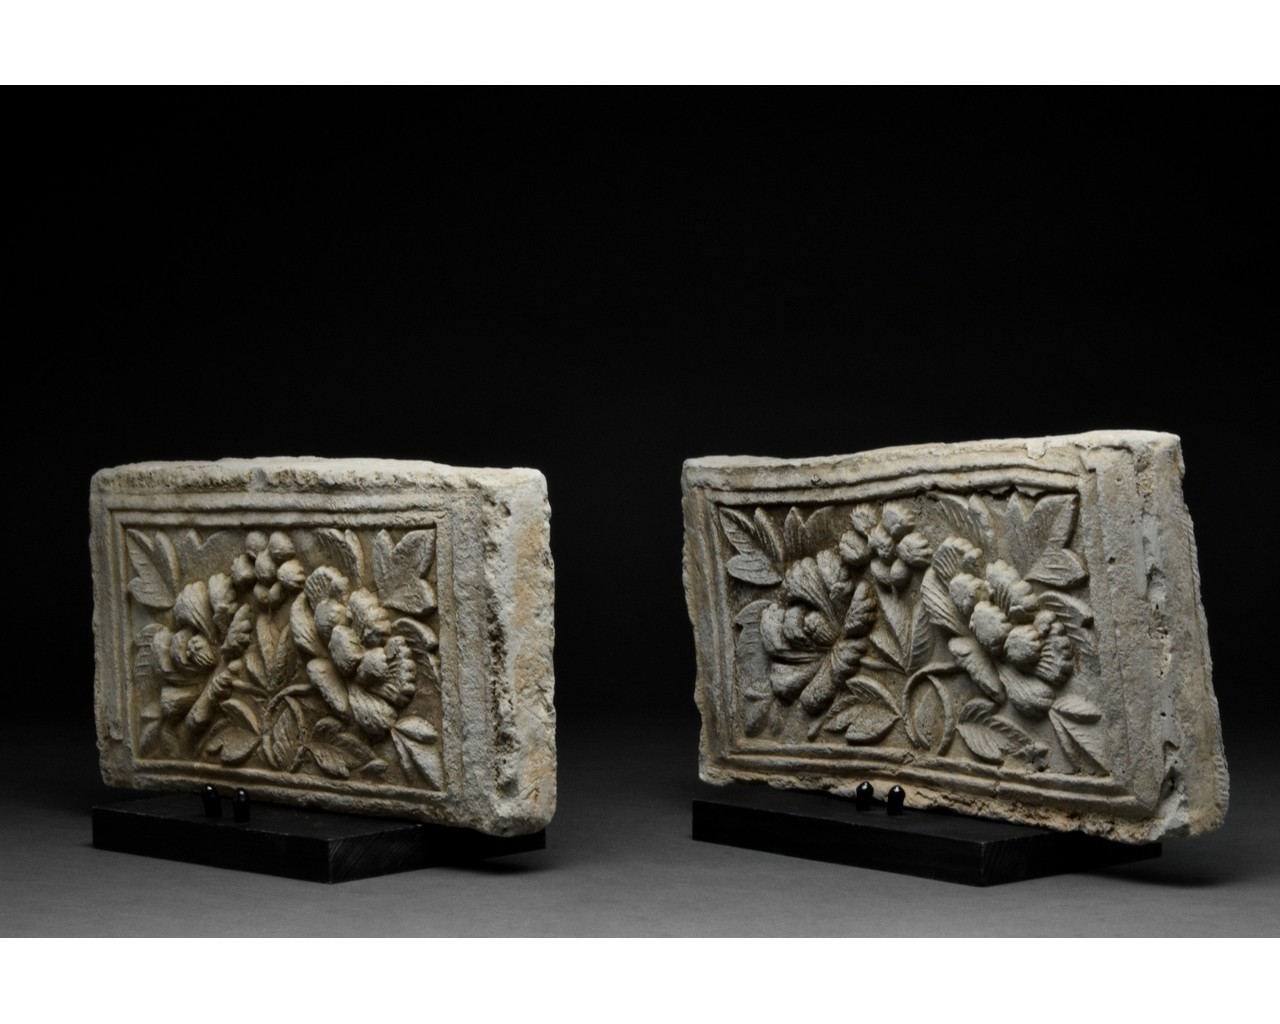 PAIR OF CHINESE SONG DYNASTY TERRACOTTA BRICKS - Image 2 of 5